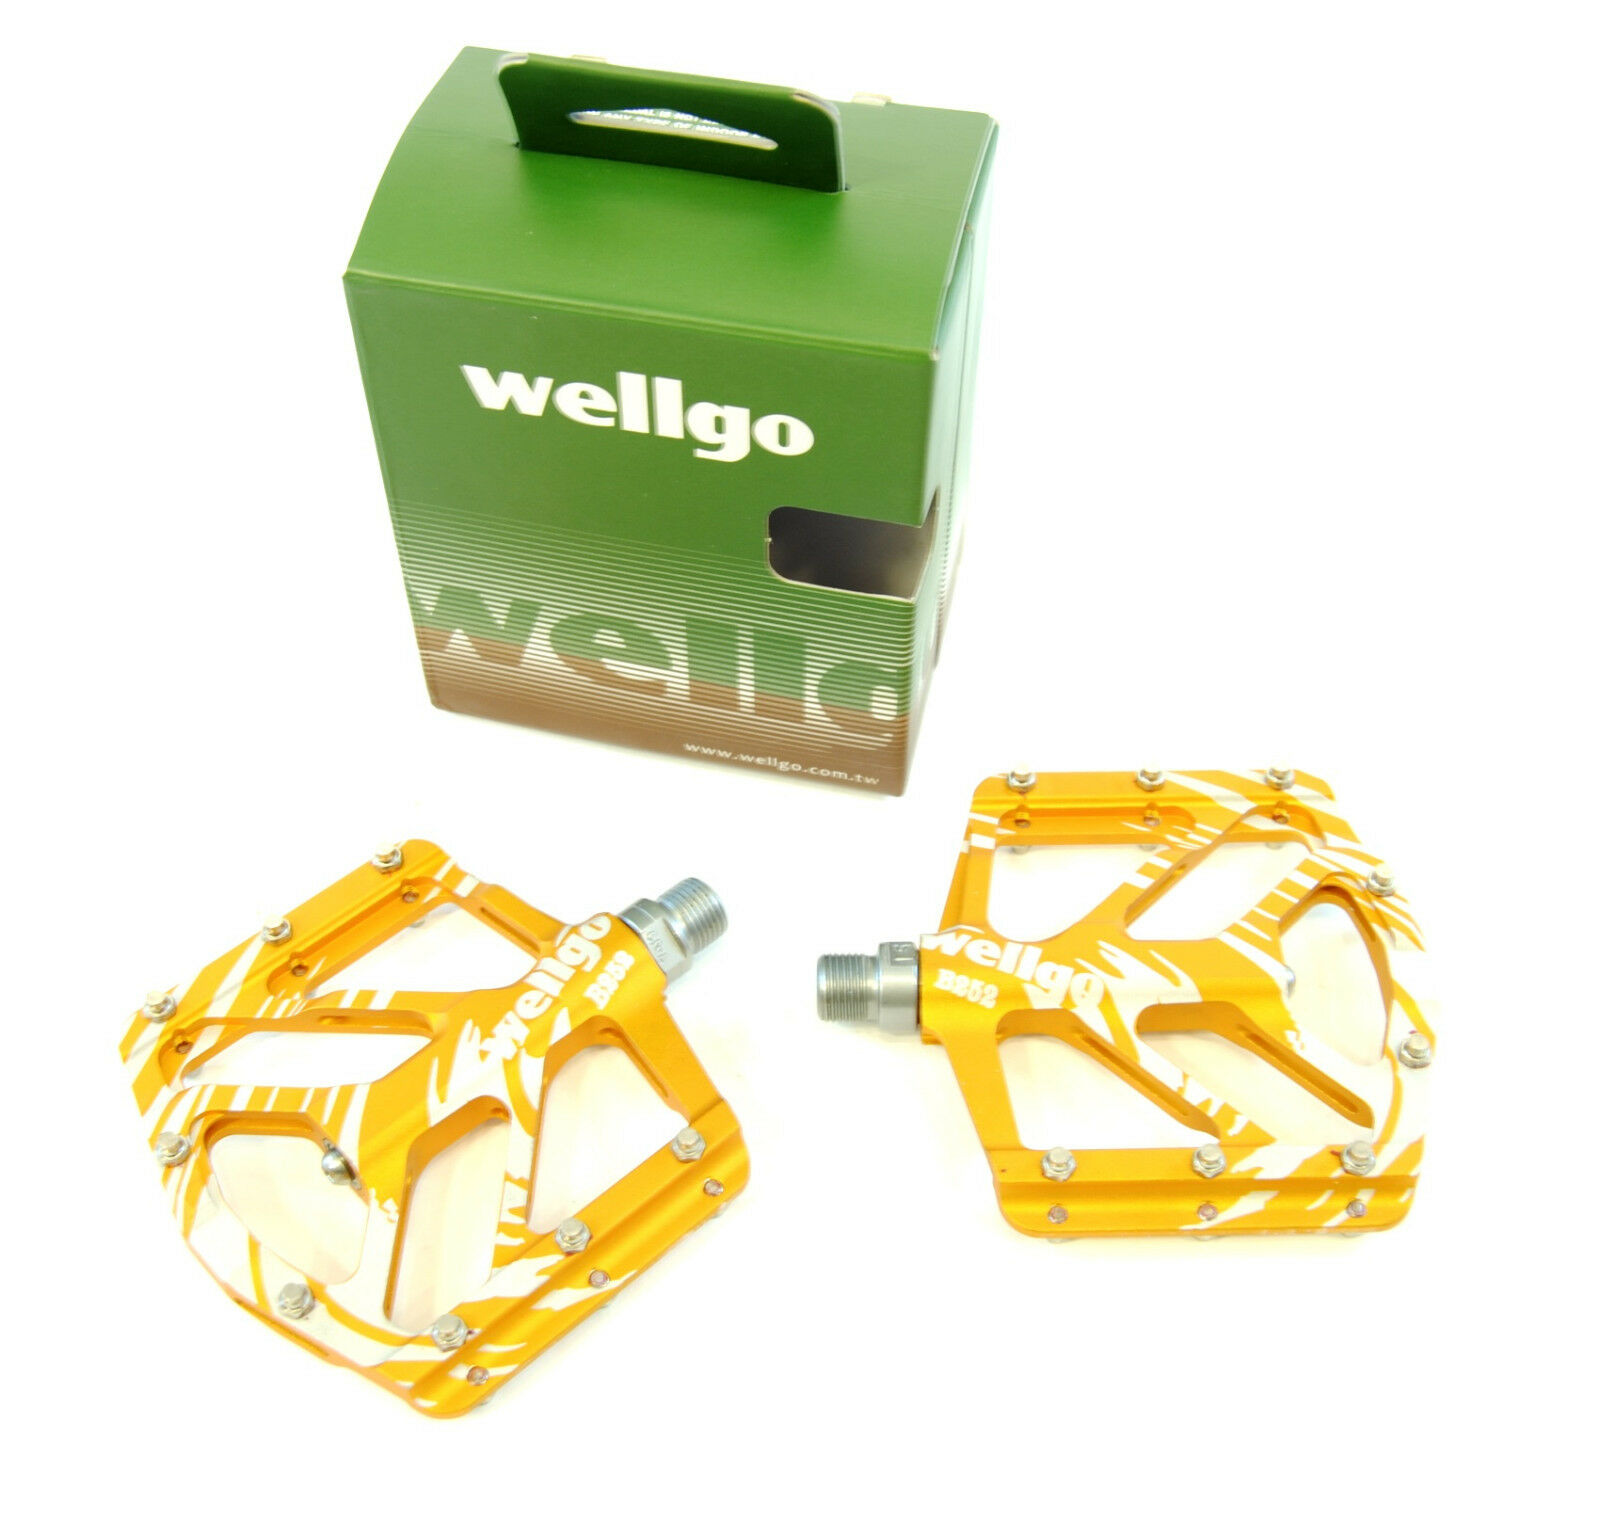 Wellgo B-252 Mag Magnesium Low Profile Mountain Bike Pedals, Yellow gold, 155g